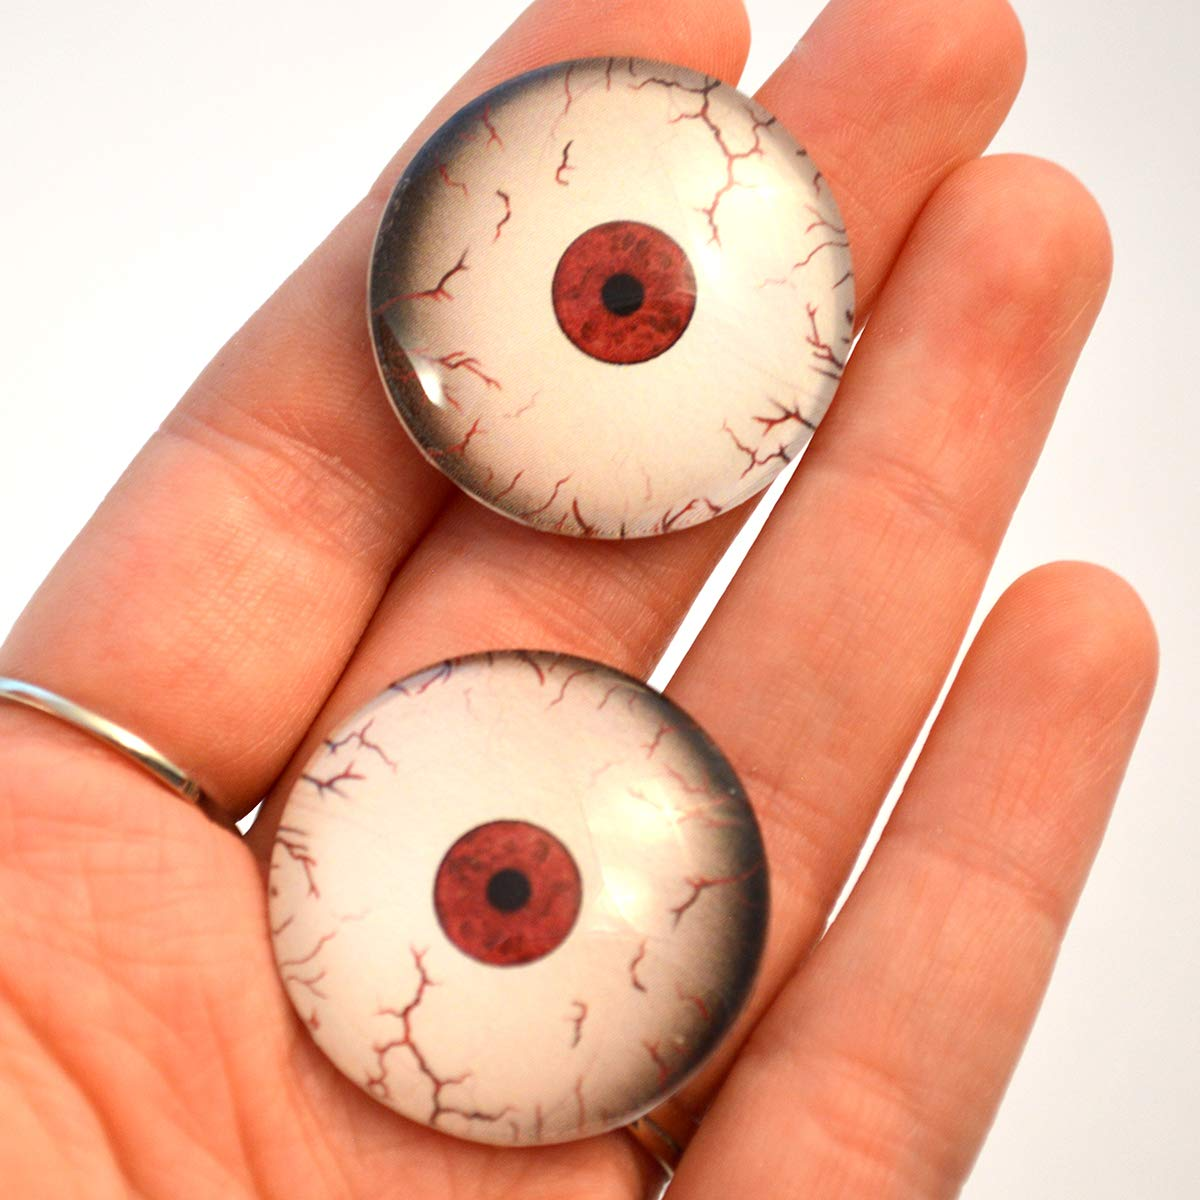 30mm Crazy Bloodshot Mars Martian Glass Eyes Scary Creepy Horror Art Dolls Taxidermy Sculptures or Jewelry Making Cabochons Crafts Matching Set of 2 in Red and White